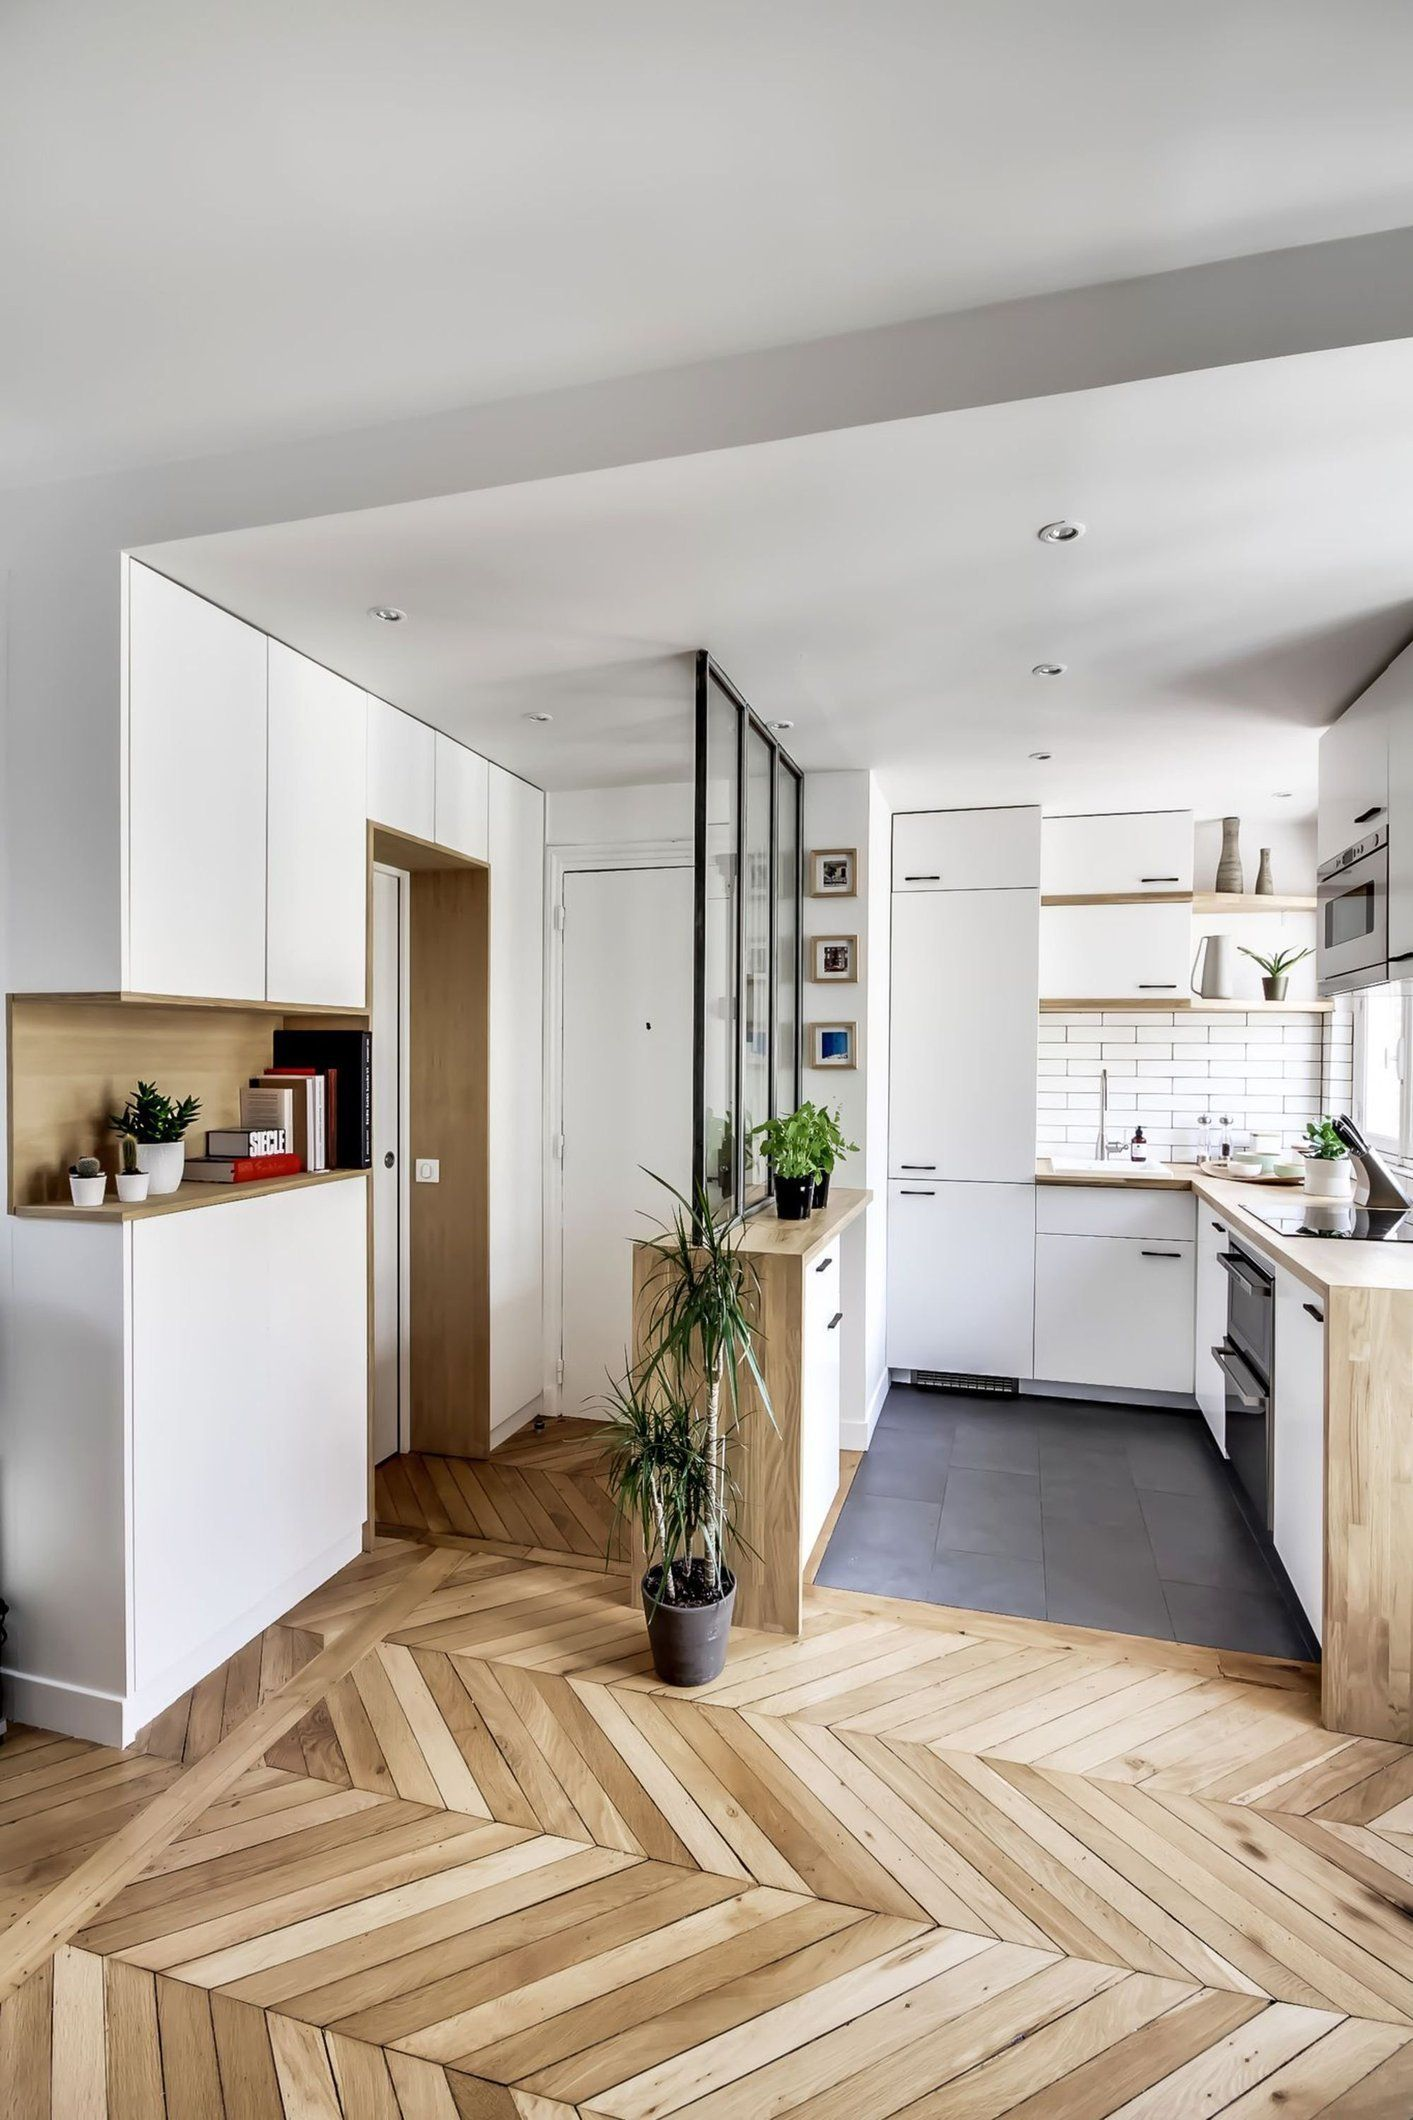 Die Kleine Küche In New York A Smart Remodel For A Small Space In Paris Home Kitchen